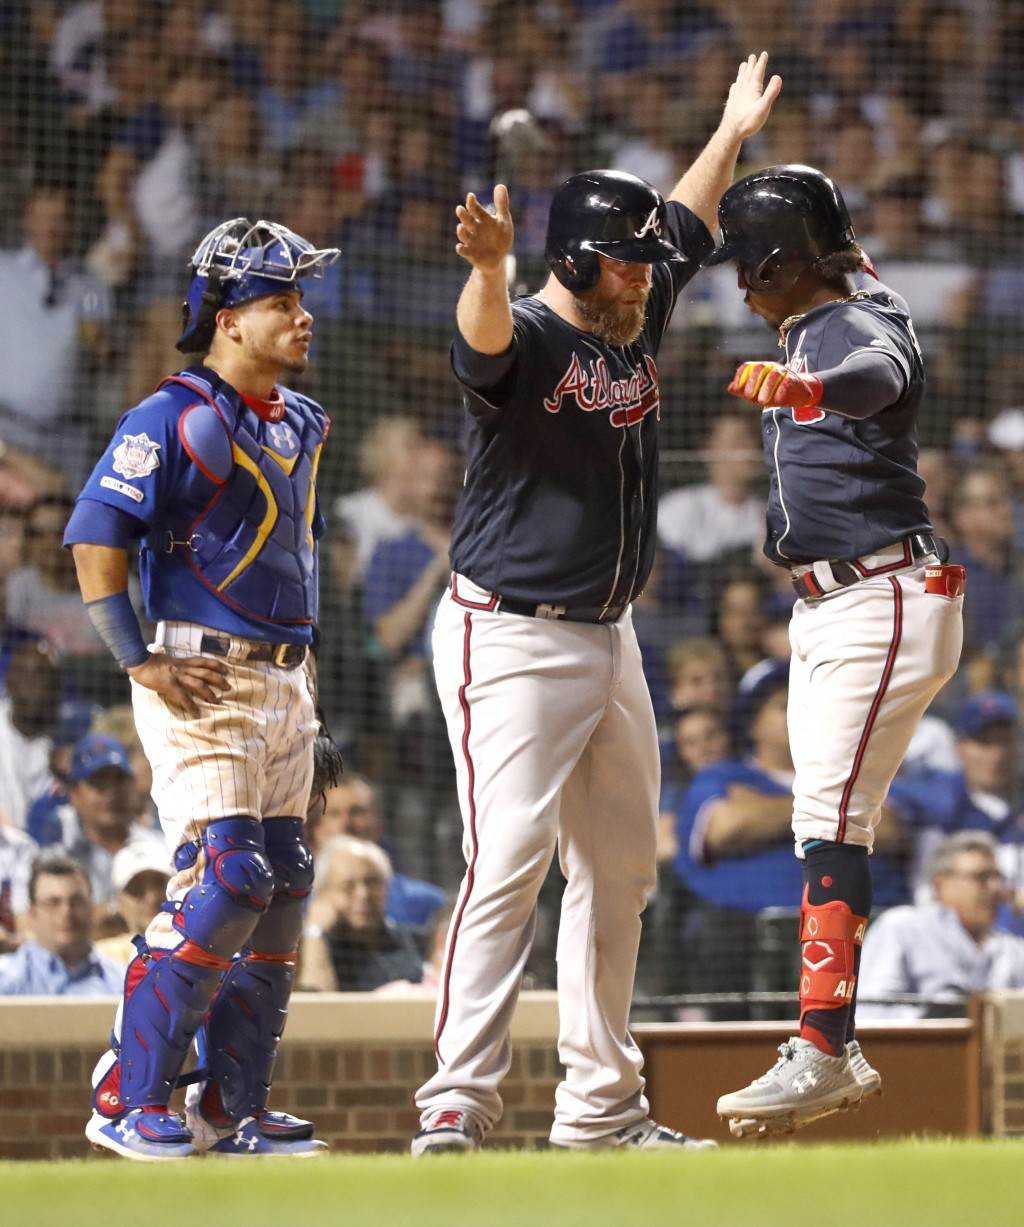 Atlanta Braves' Brian McCann, center, greets Ozzie Albies, right, at home after the pair scored on Albies' two-run home run as Chicago Cubs catcher Wi...